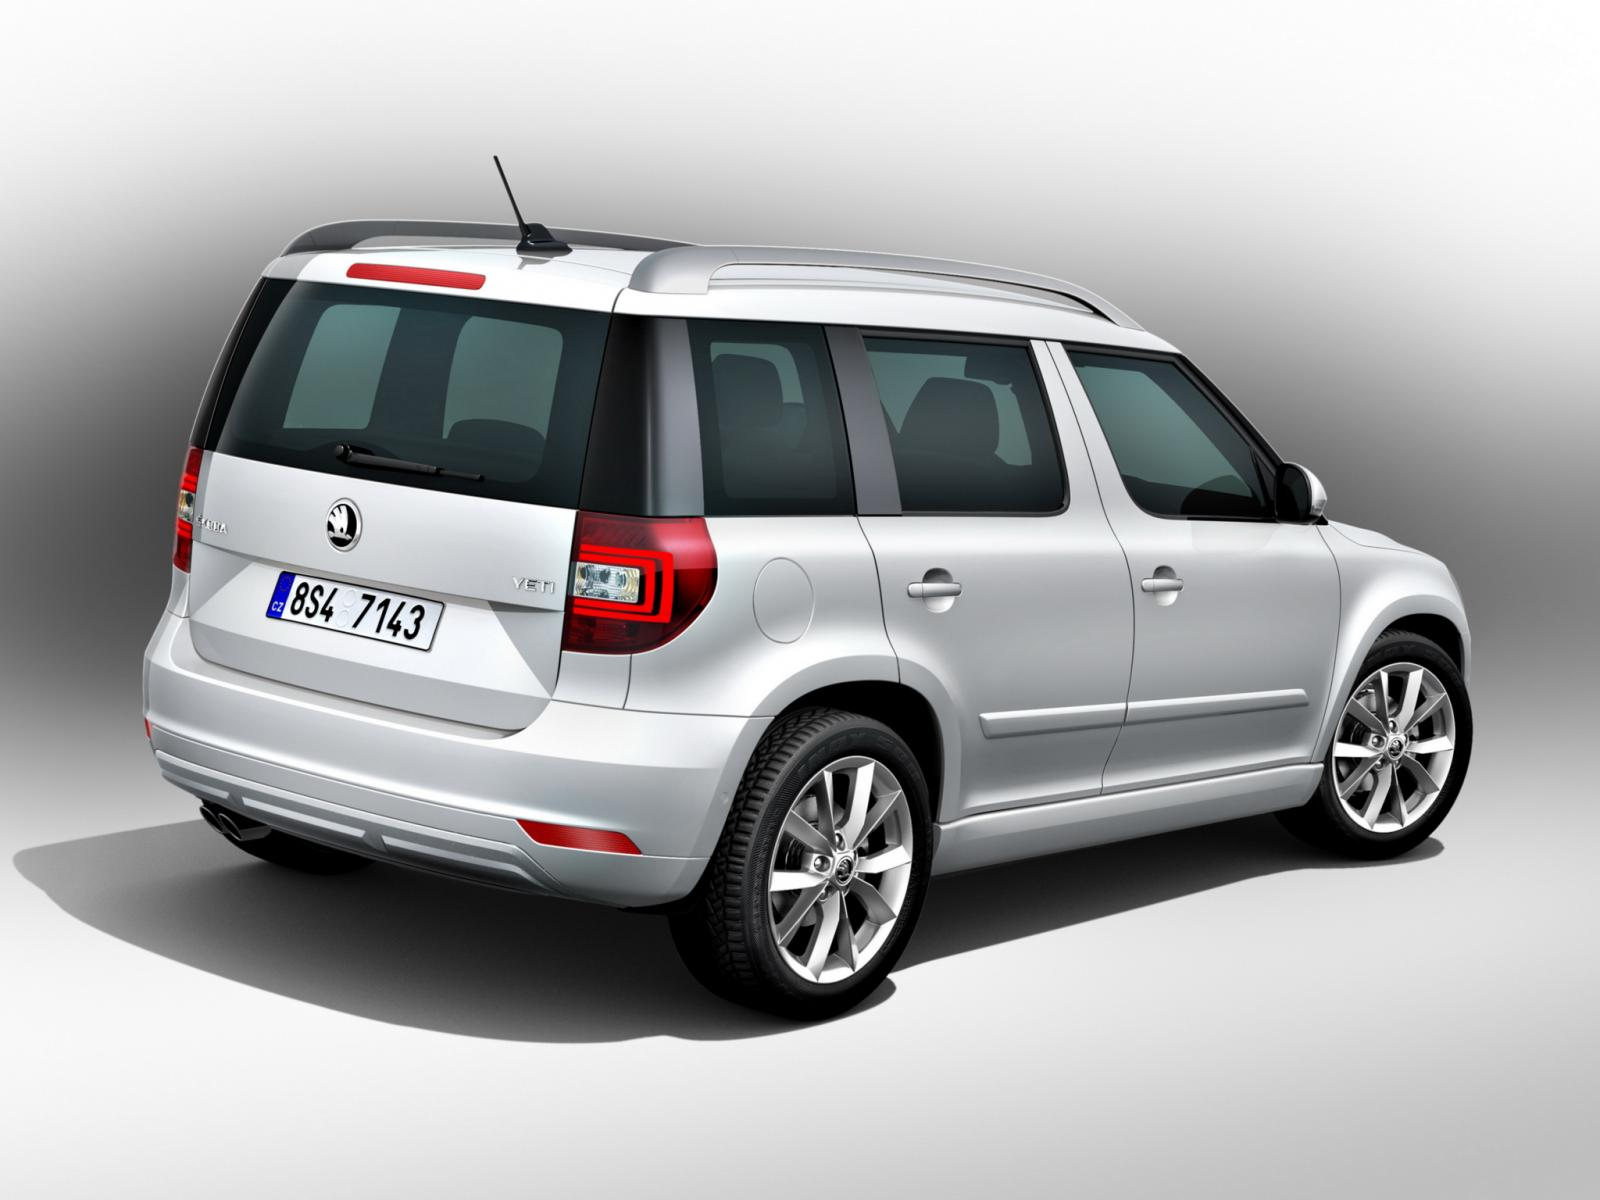 skoda yeti facelift mit zwei designlinien autogef hl. Black Bedroom Furniture Sets. Home Design Ideas